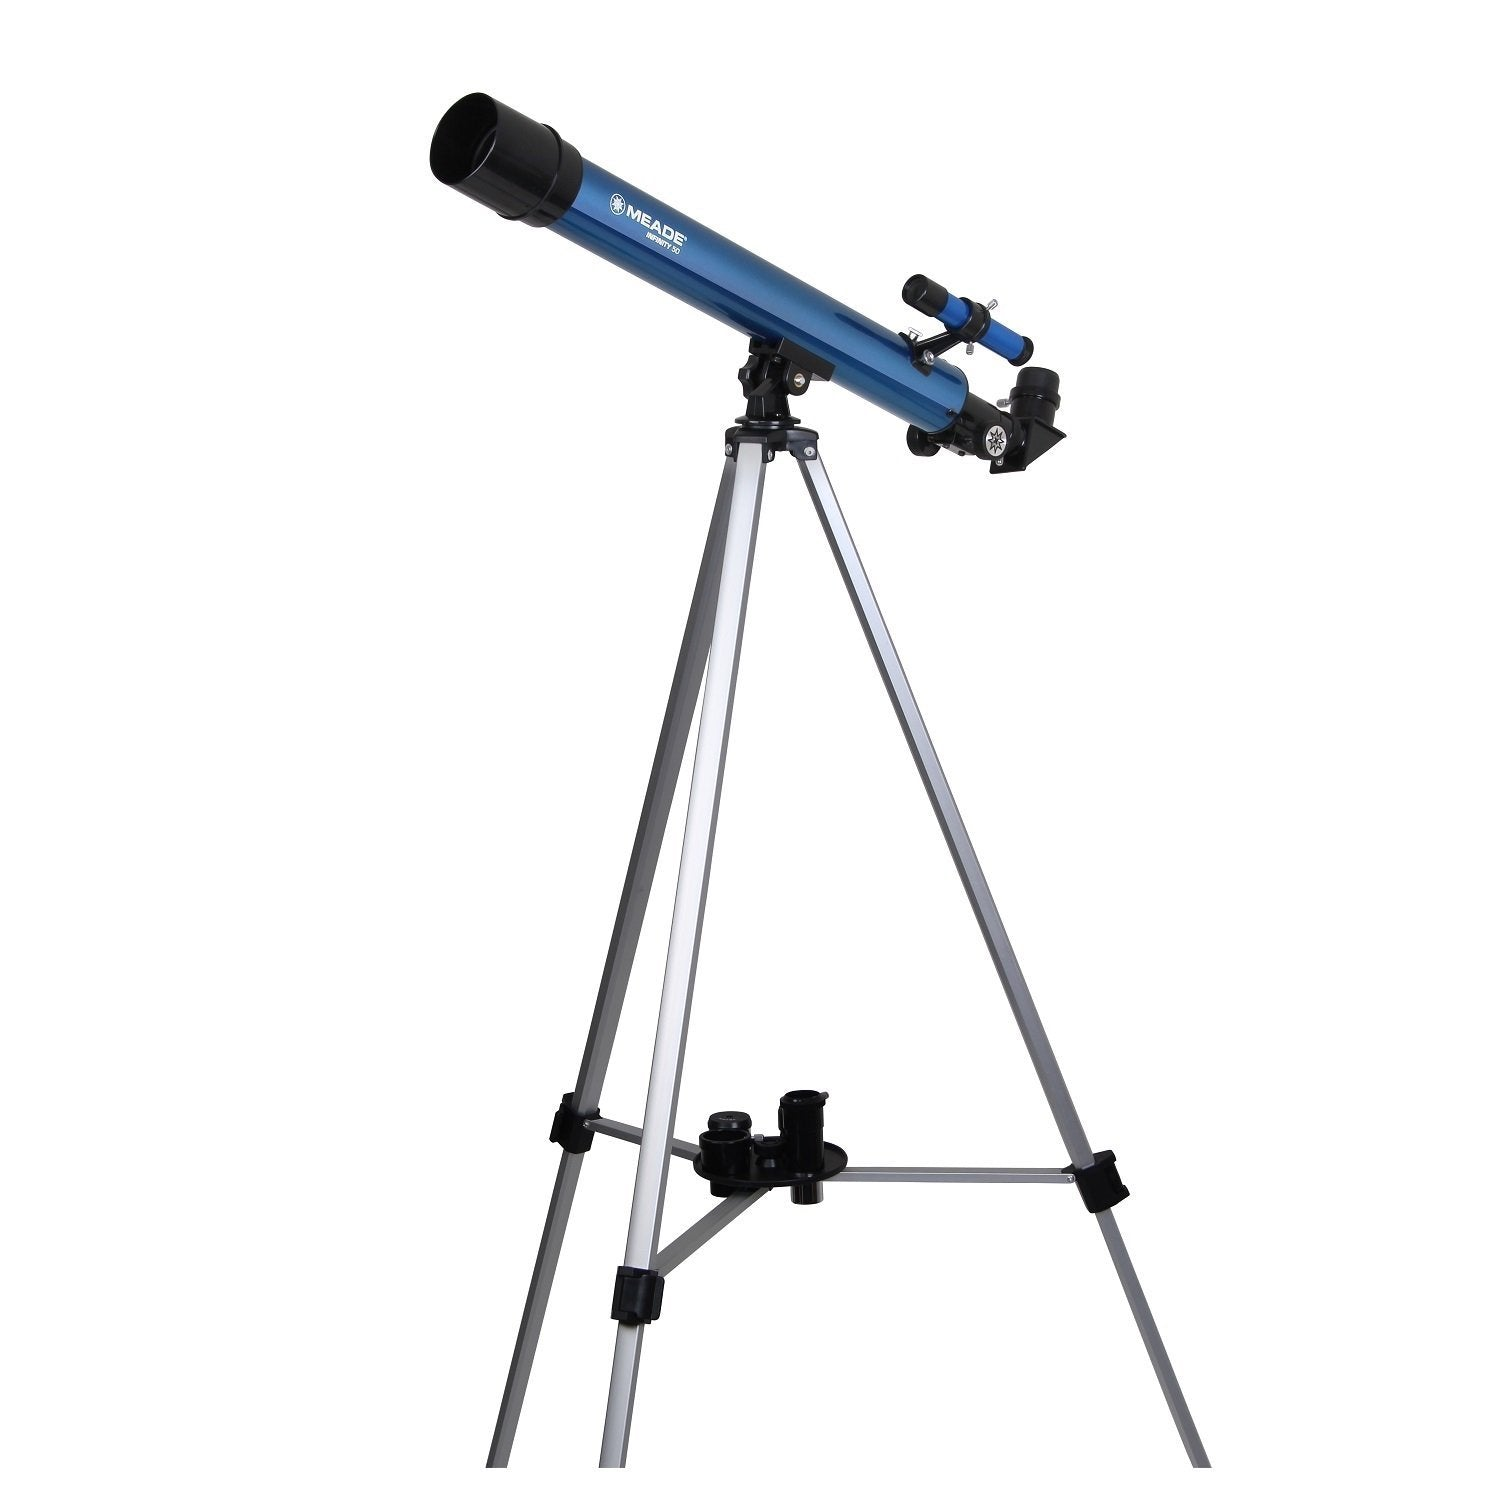 Telescope Meade Infinity 50mm Altazimuth Refractor Telescope